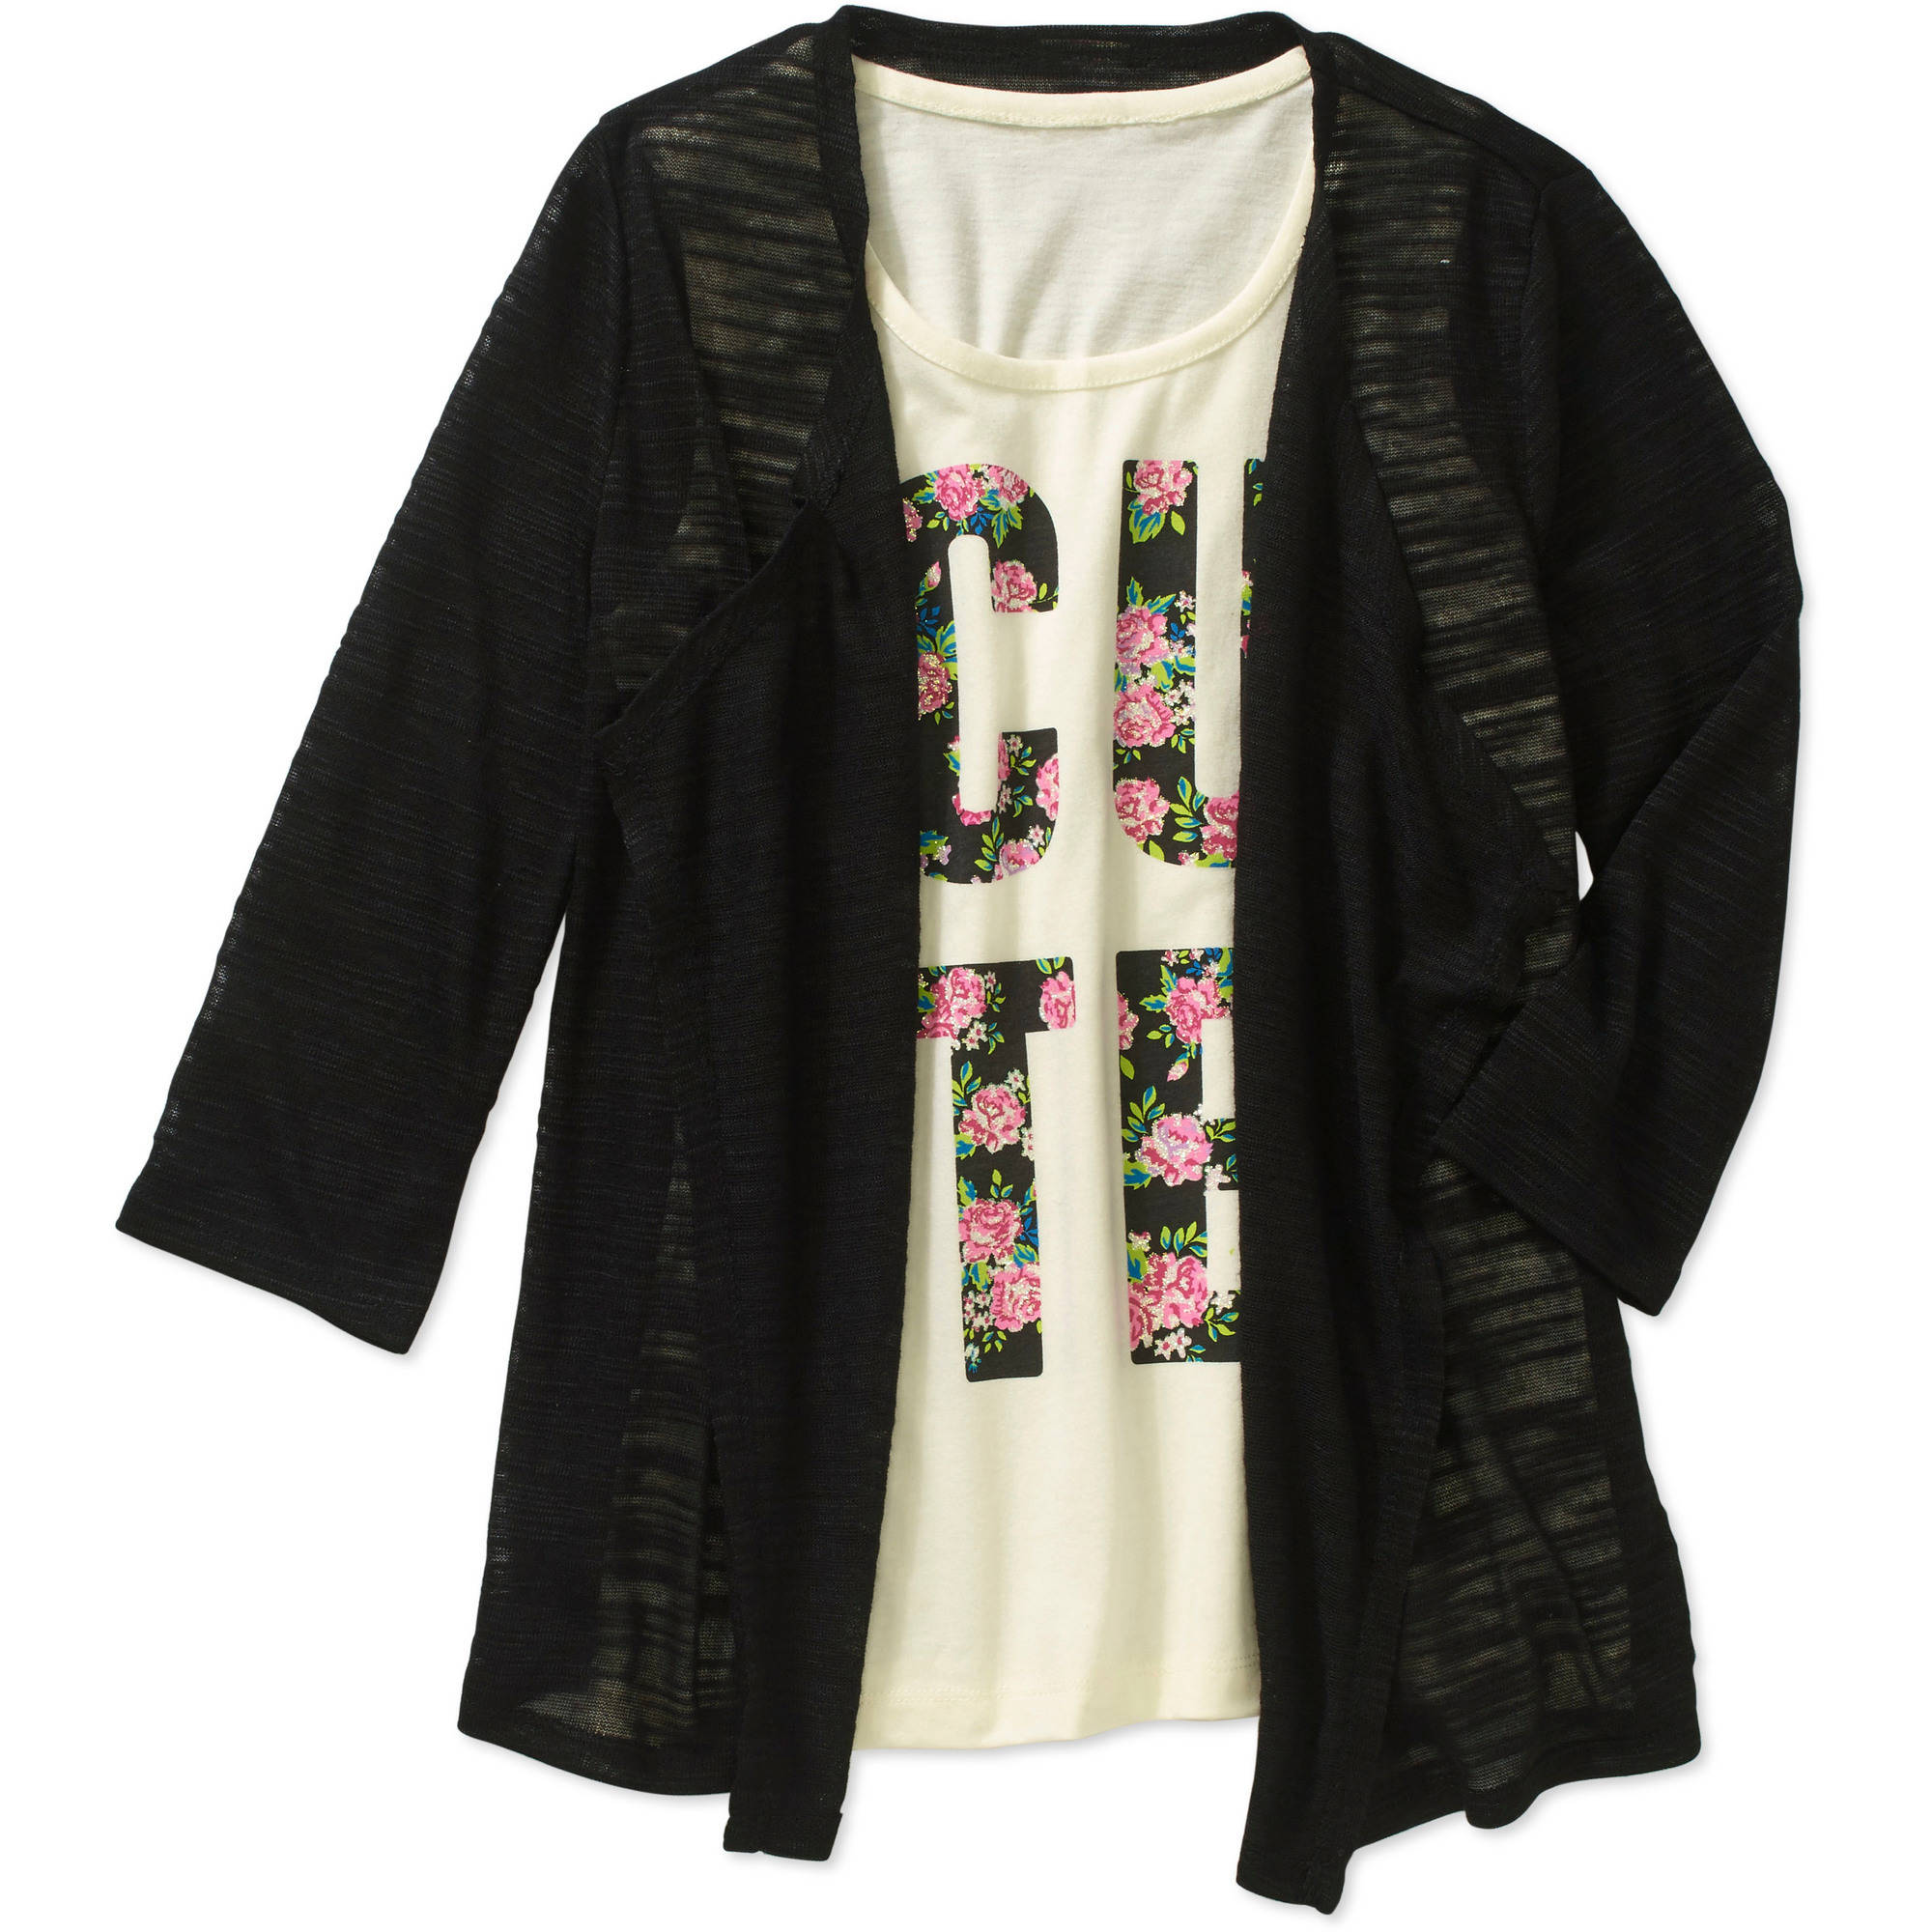 Faded Glory Girls' Top and Cozy Wrap 2Fer